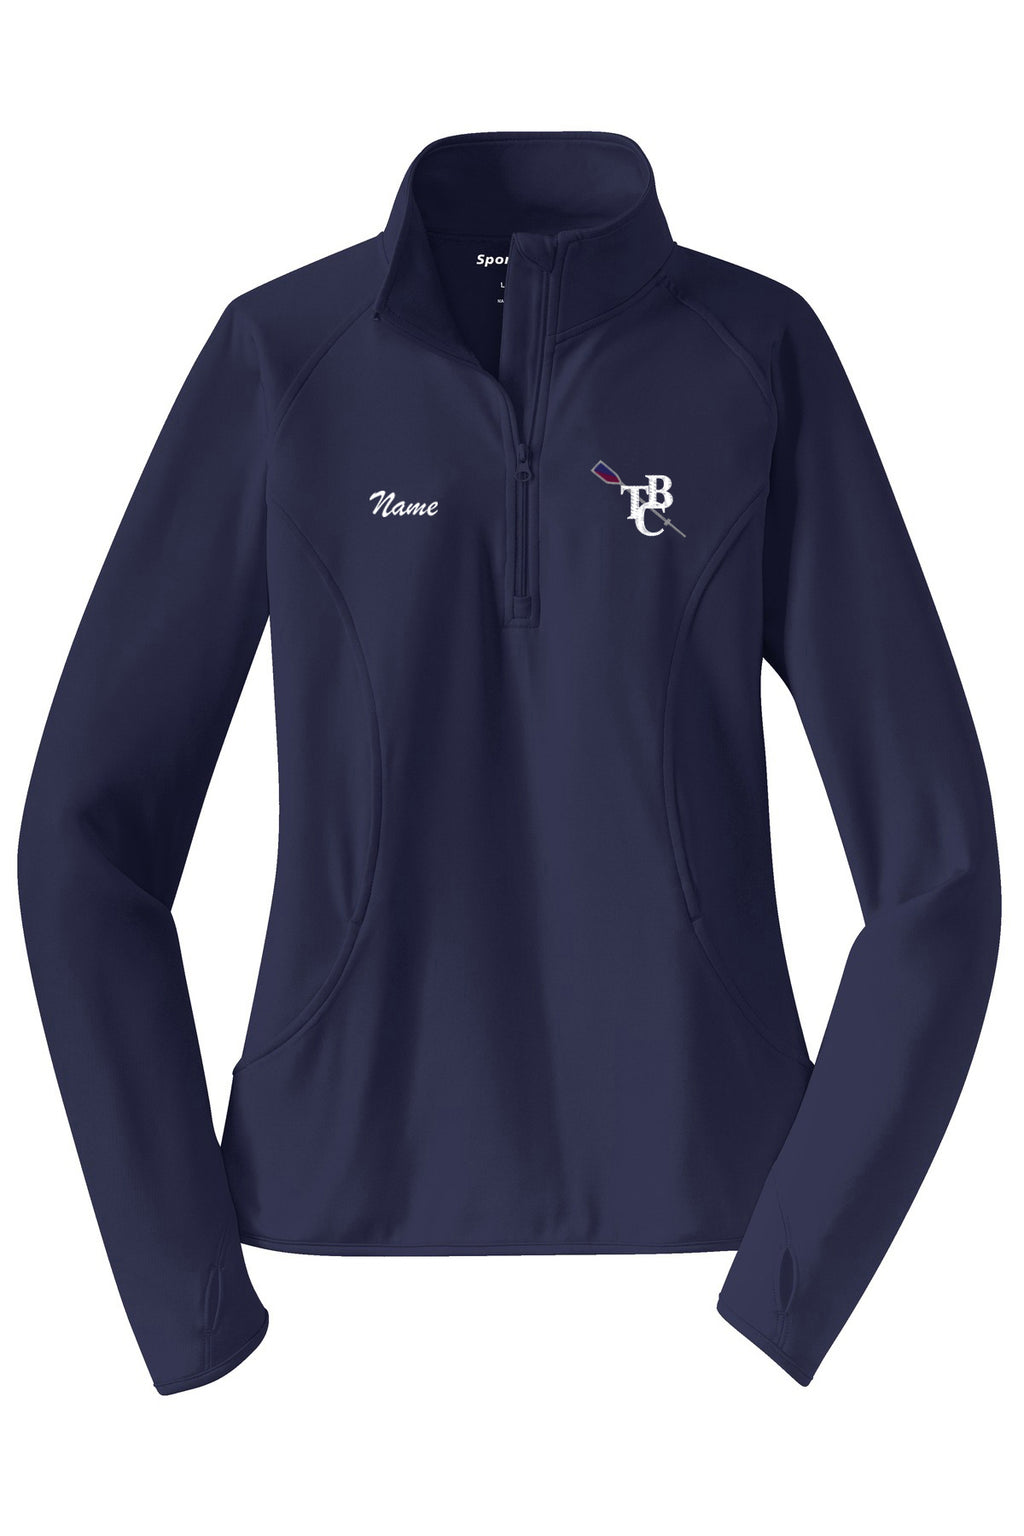 TBC Ladies Pullover Sweatshirt w/ Thumbhole